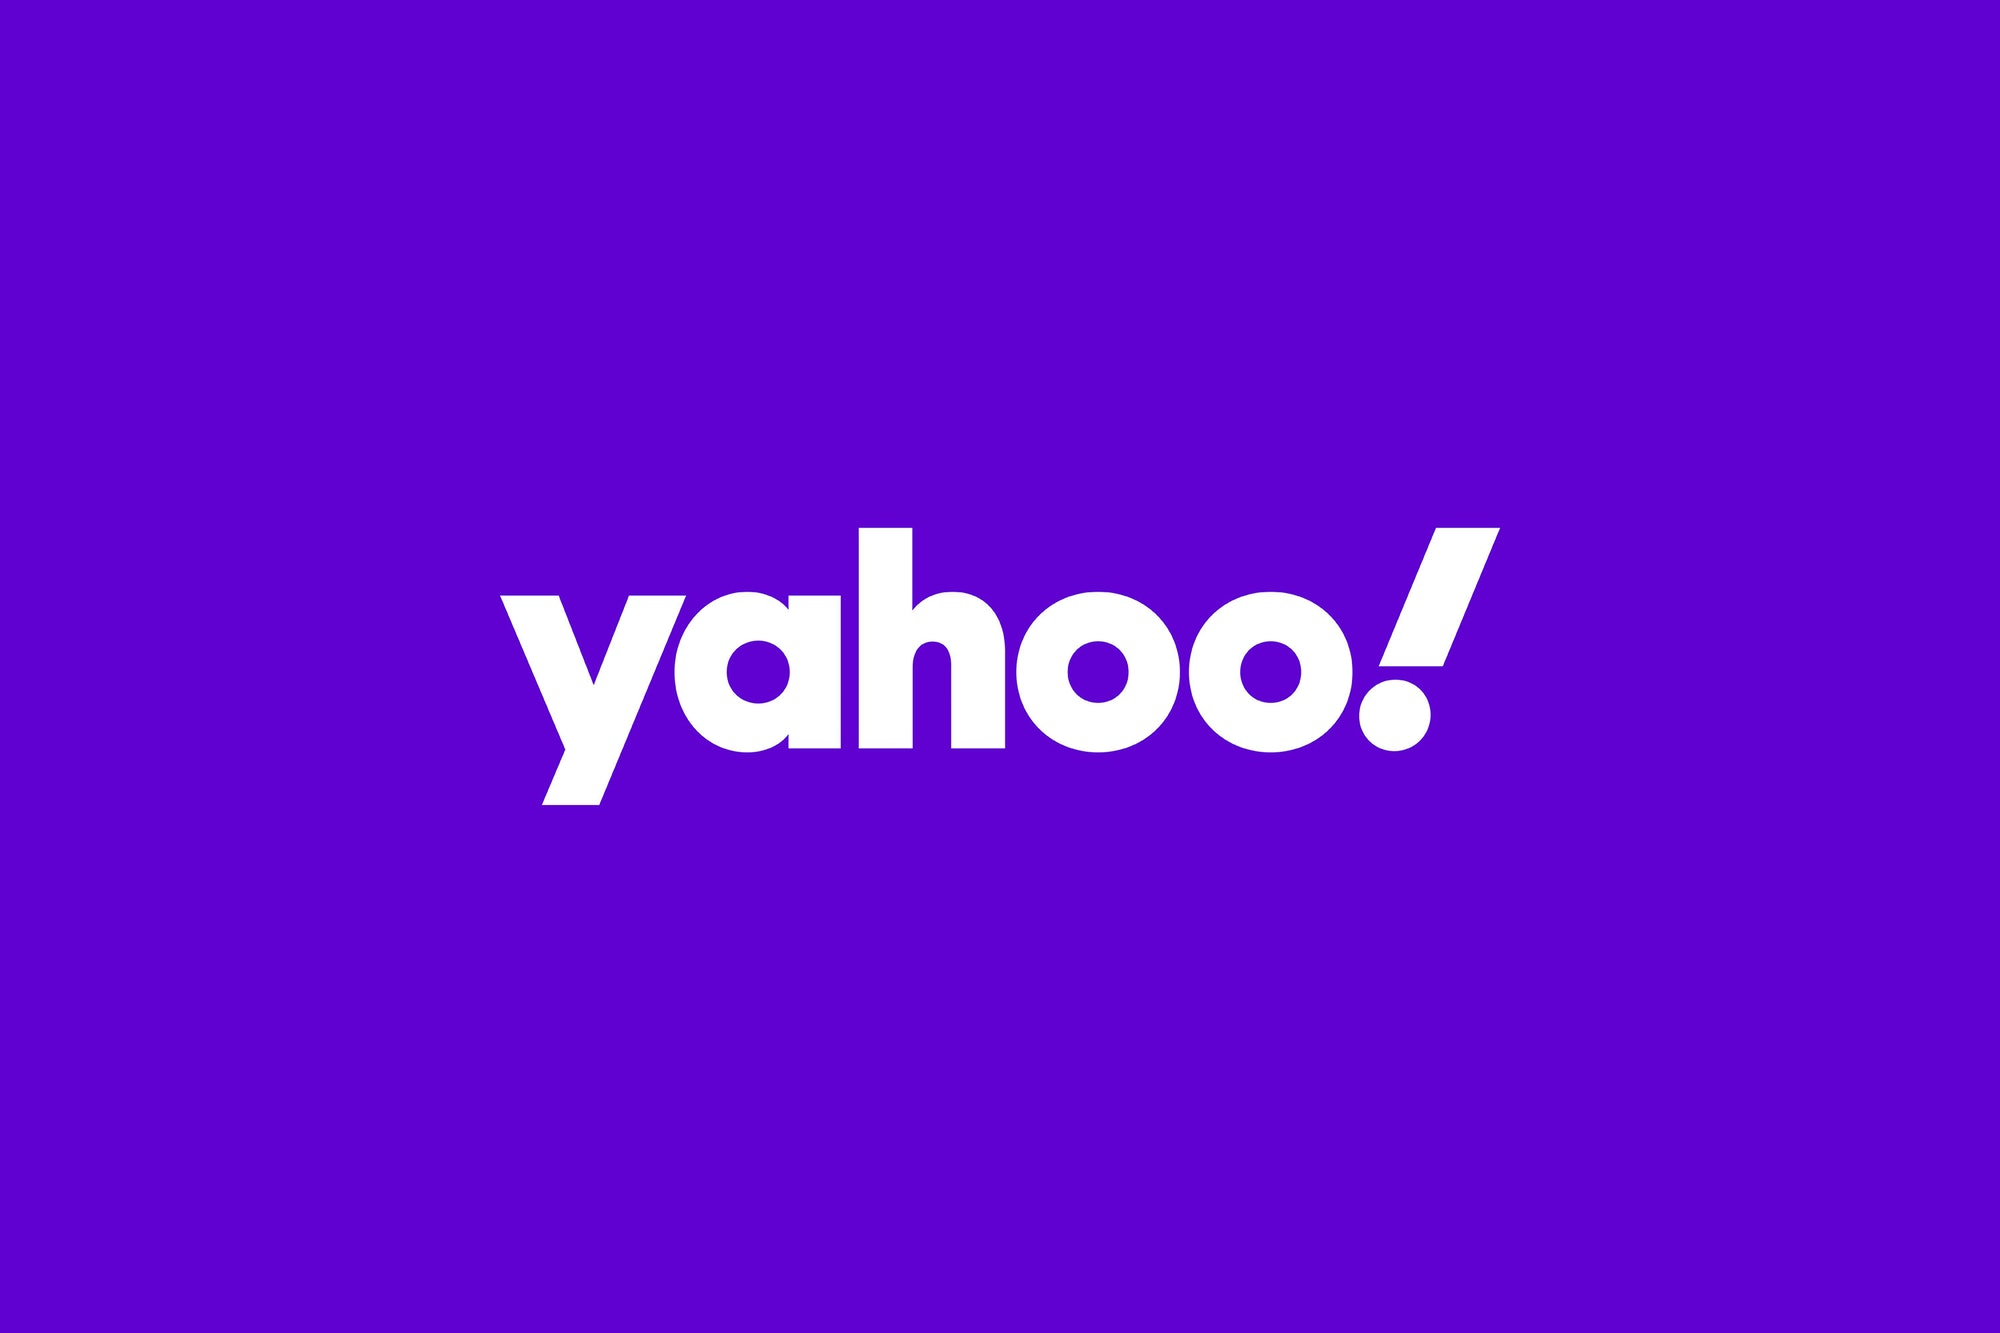 Yahoo debuted a new logo Monday, its third since launching in 1995.